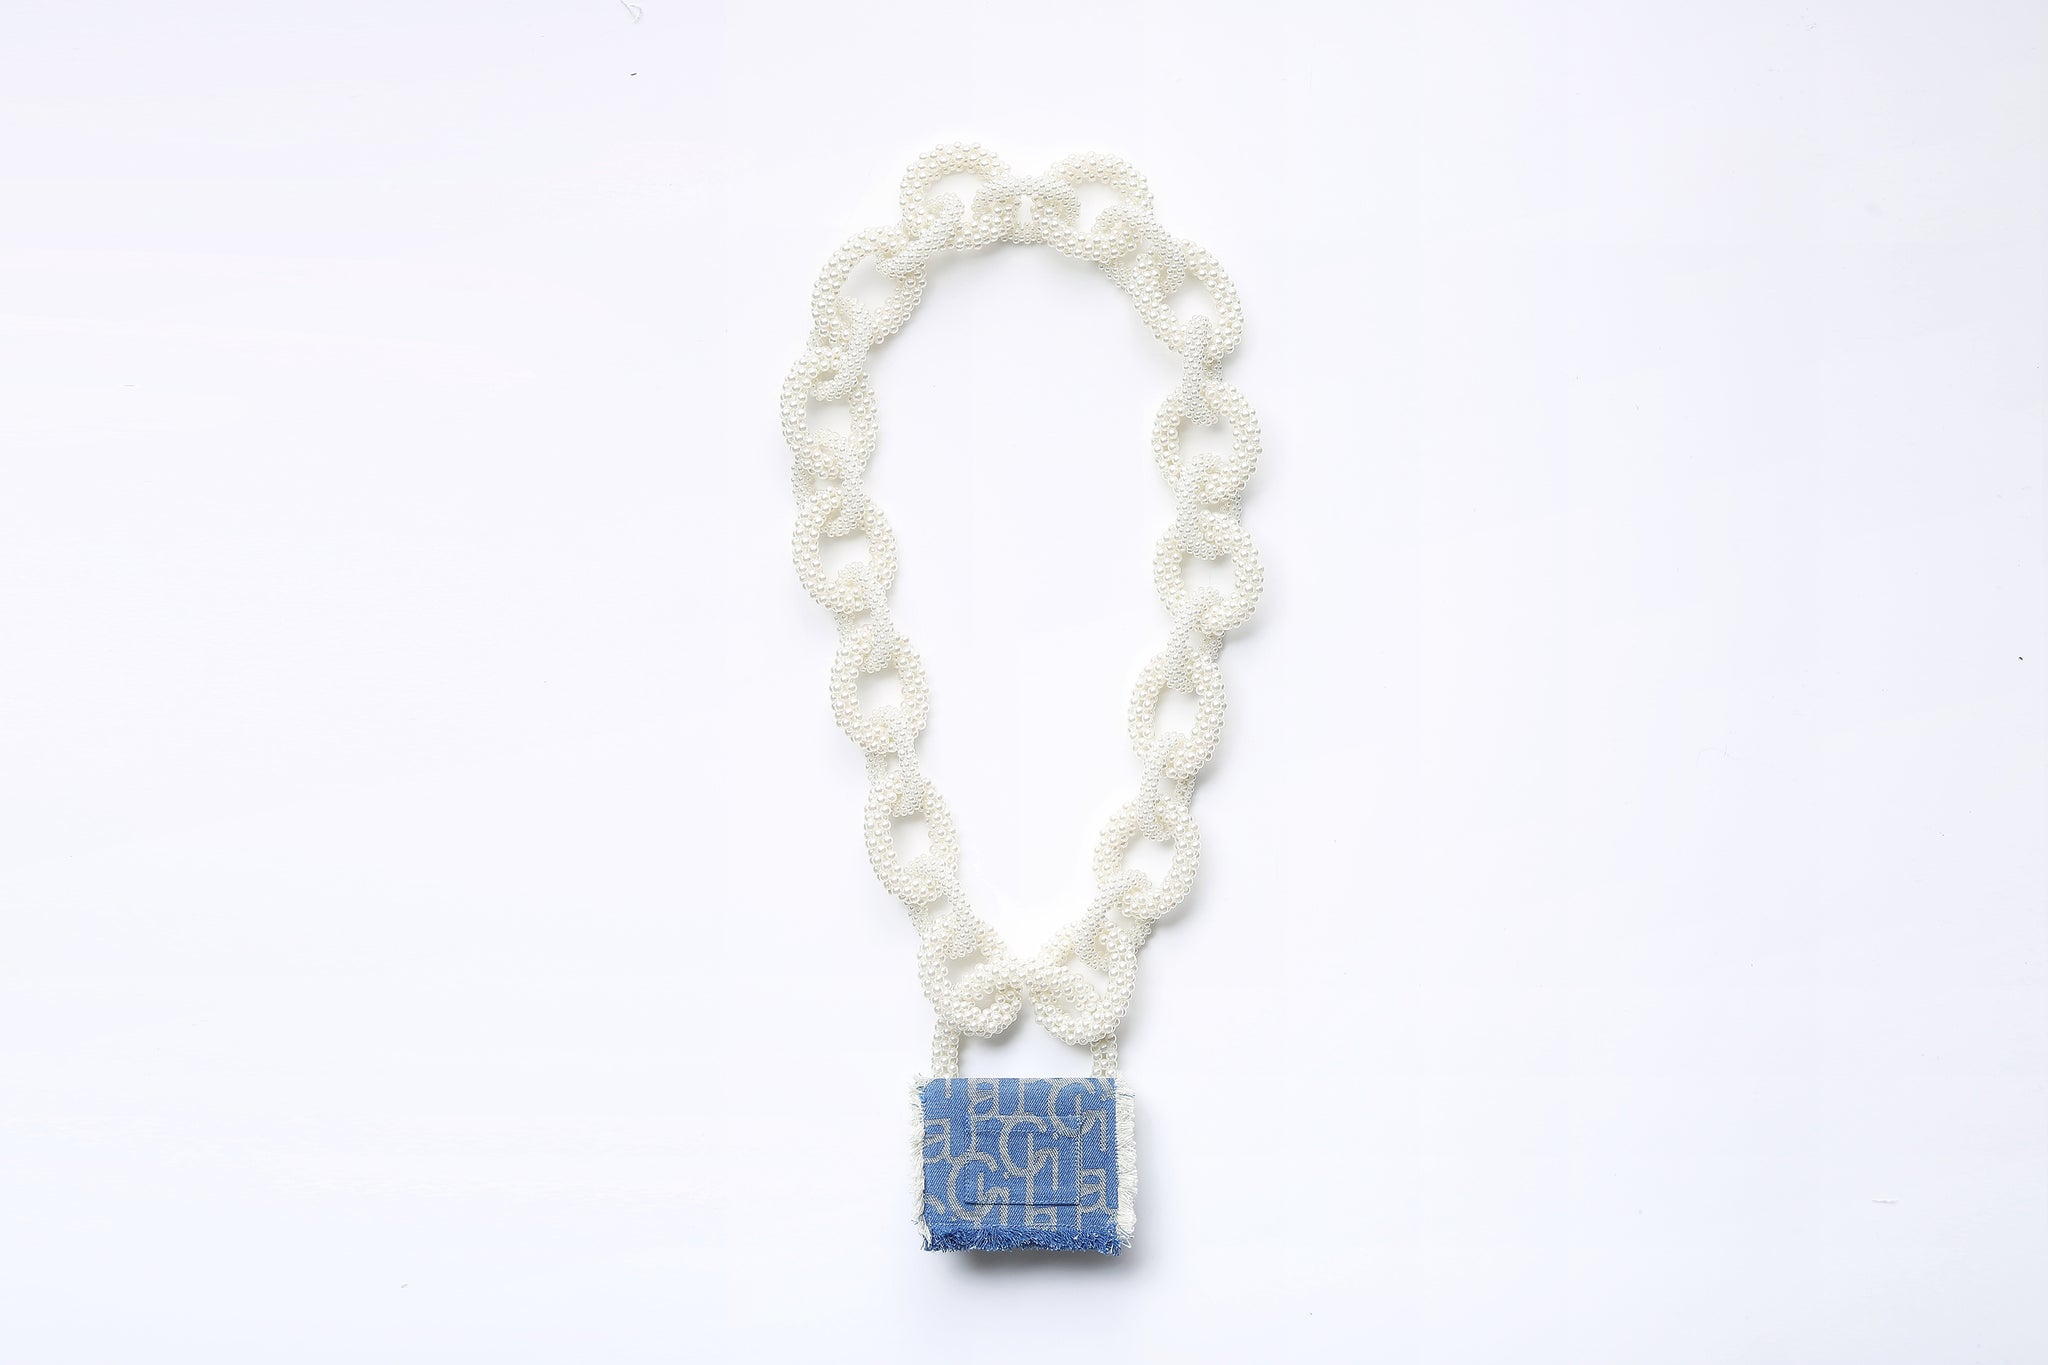 Laulau Chichi Jacquard Bag, Mini Rectangle, Pearl Chain, Light Blue